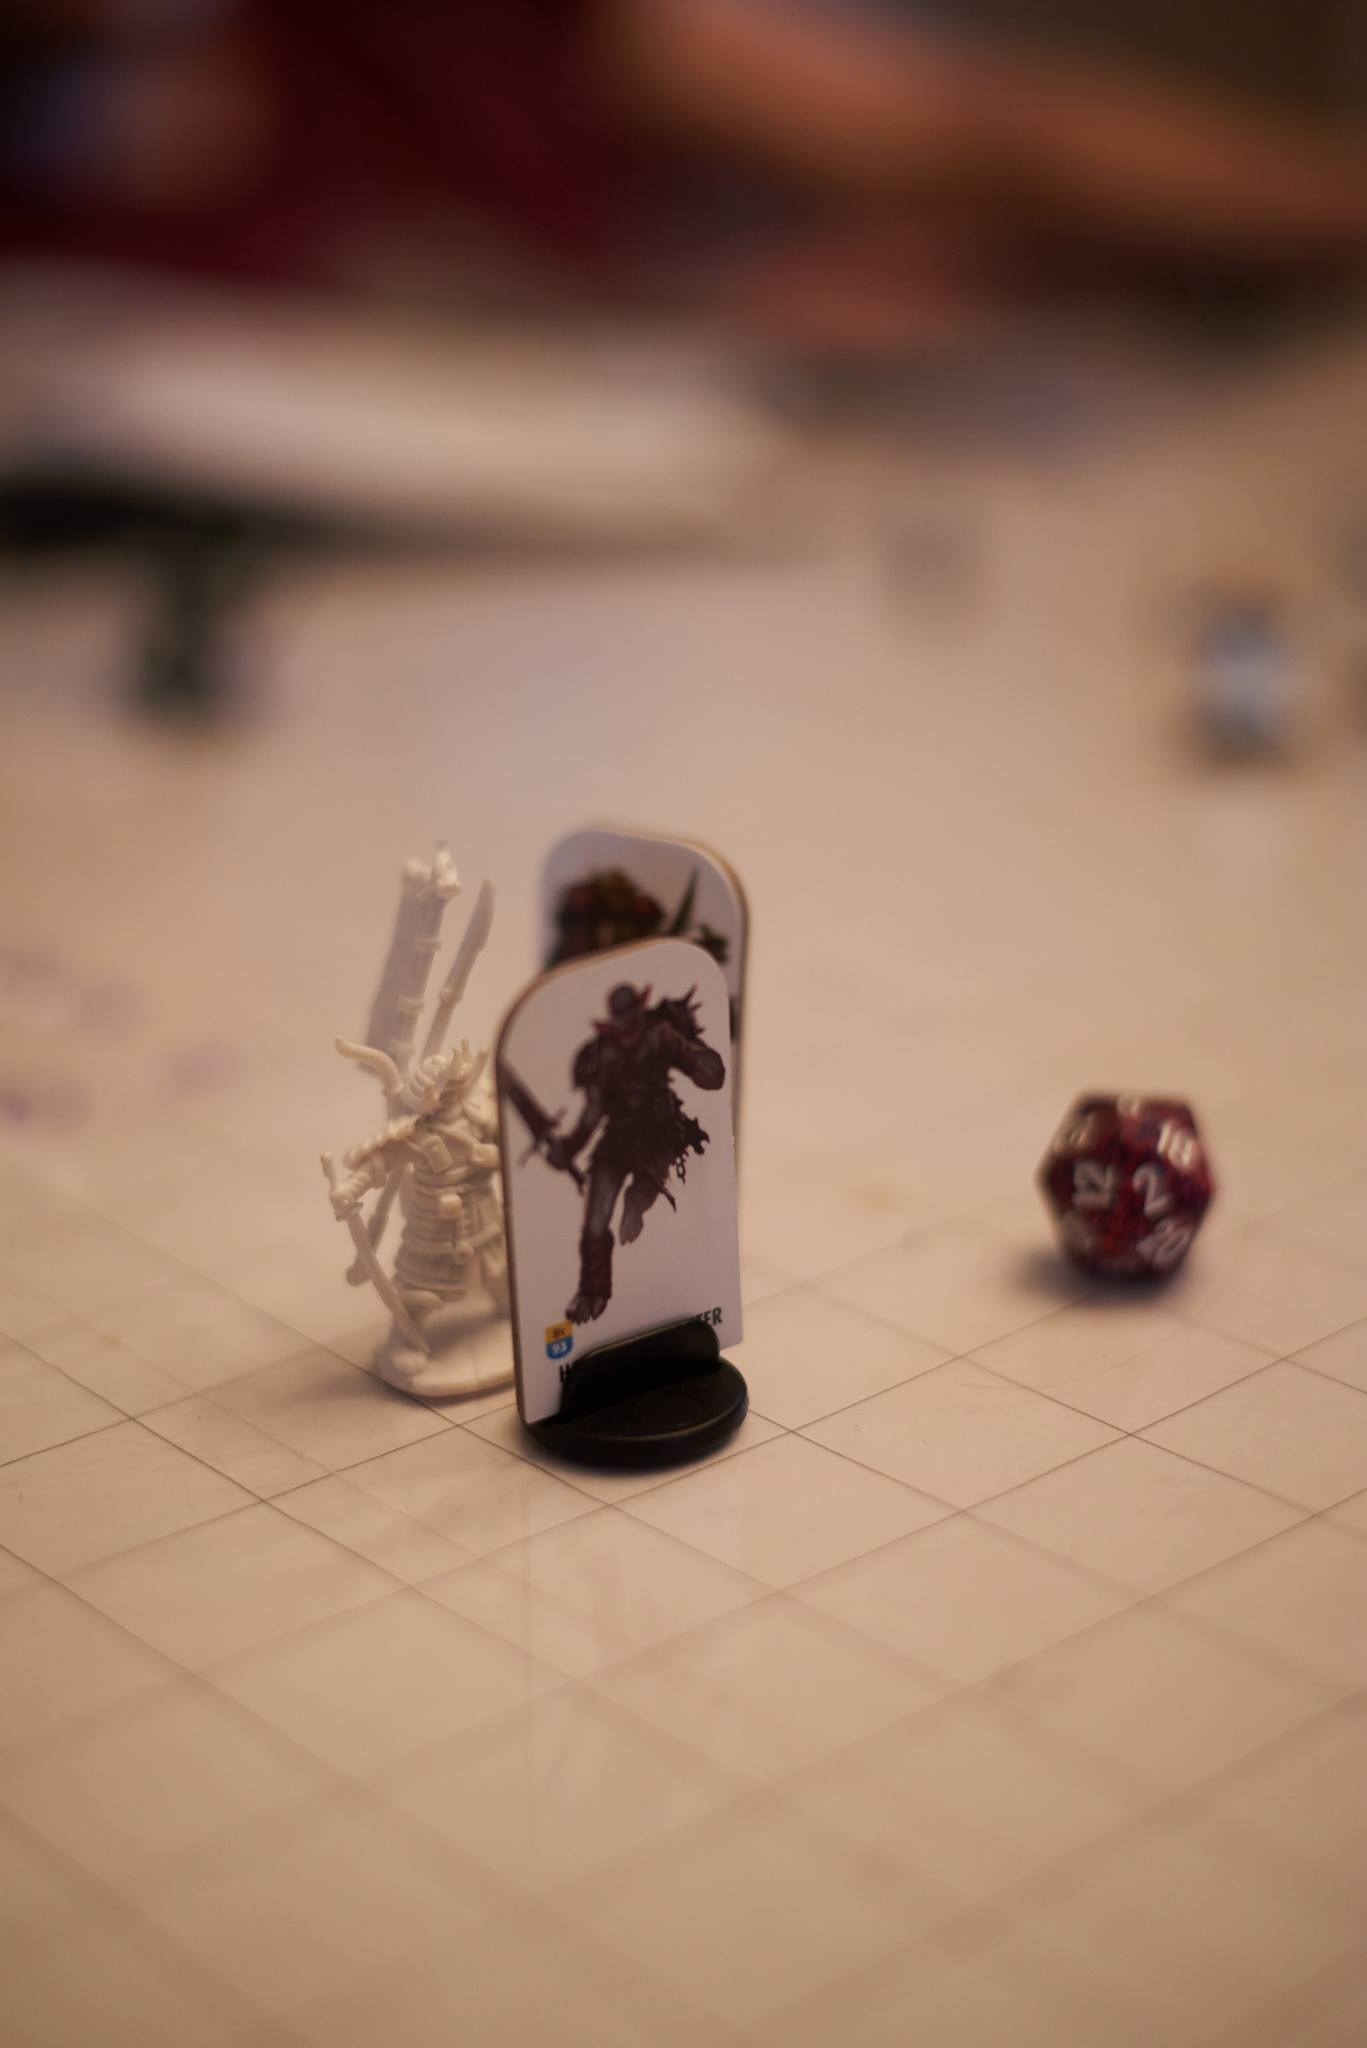 fighter in combat with two orcs. photo provided by kayetan fiett.